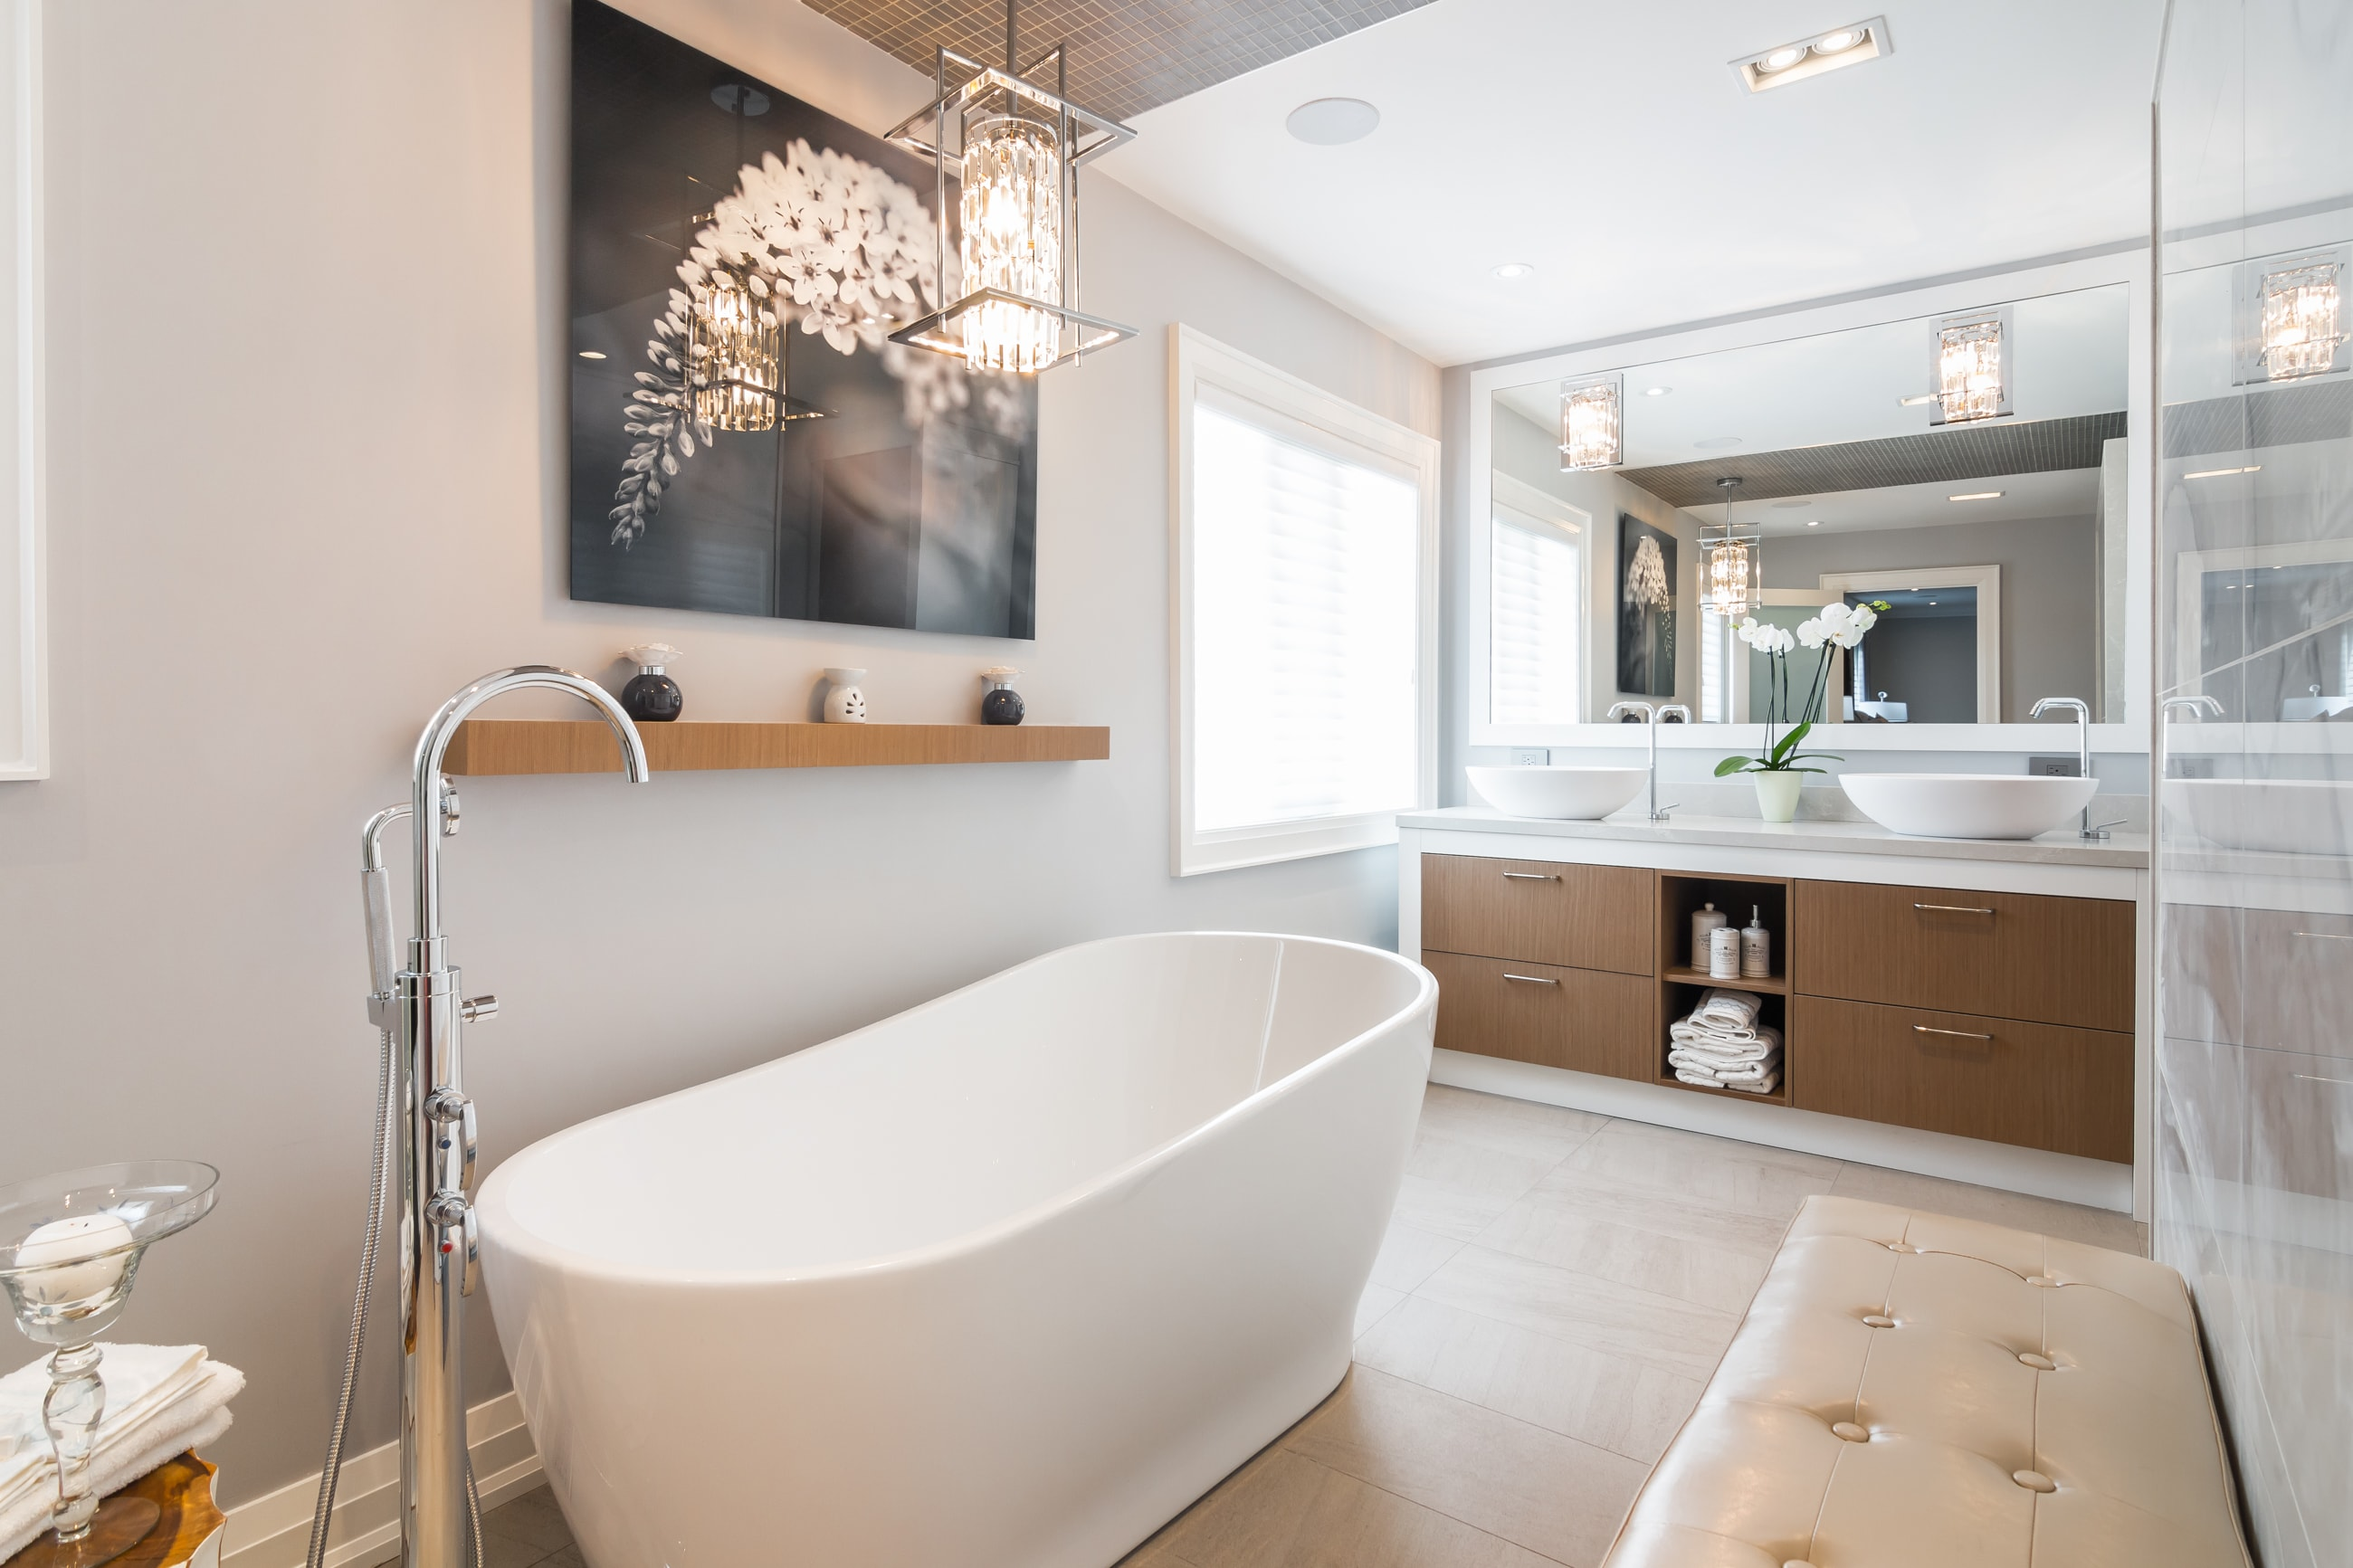 Bathroom Renovations & Remodeling - Toronto Contractors